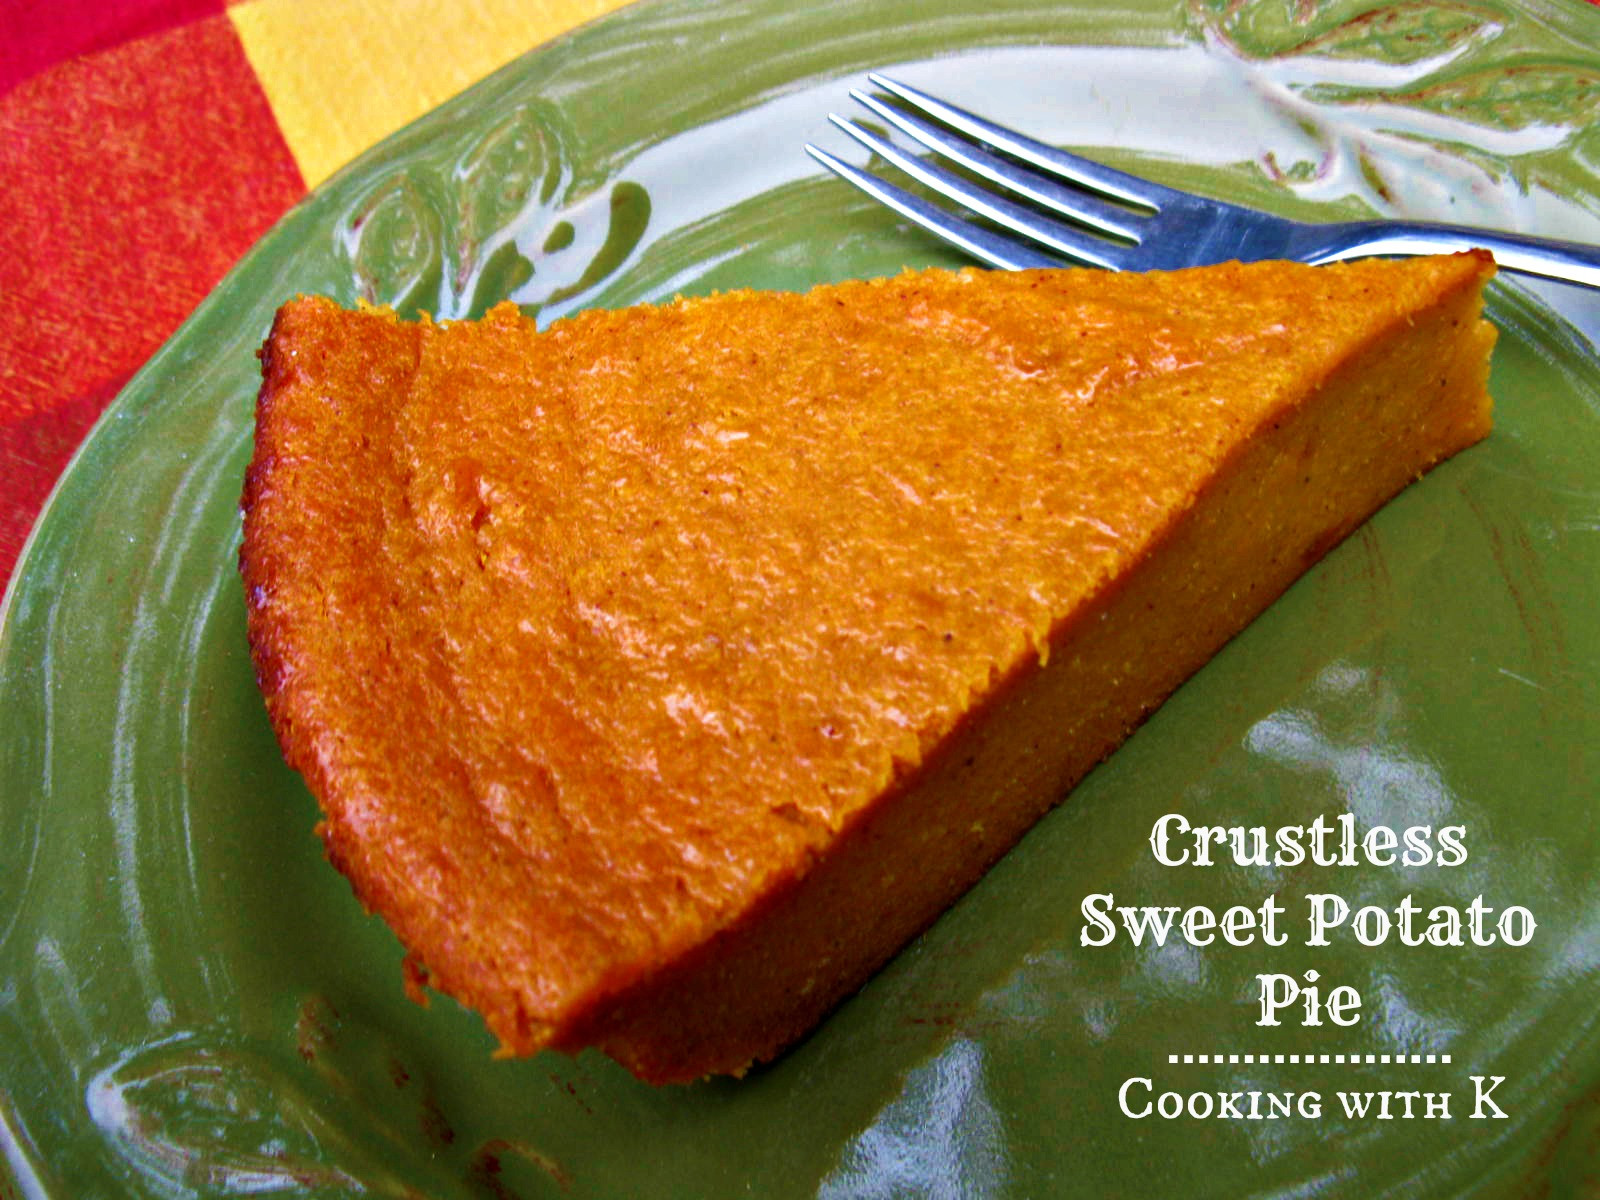 Sweet Potato Pie Crust  Crustless Sweet Potato Pie a classic way to use leftover